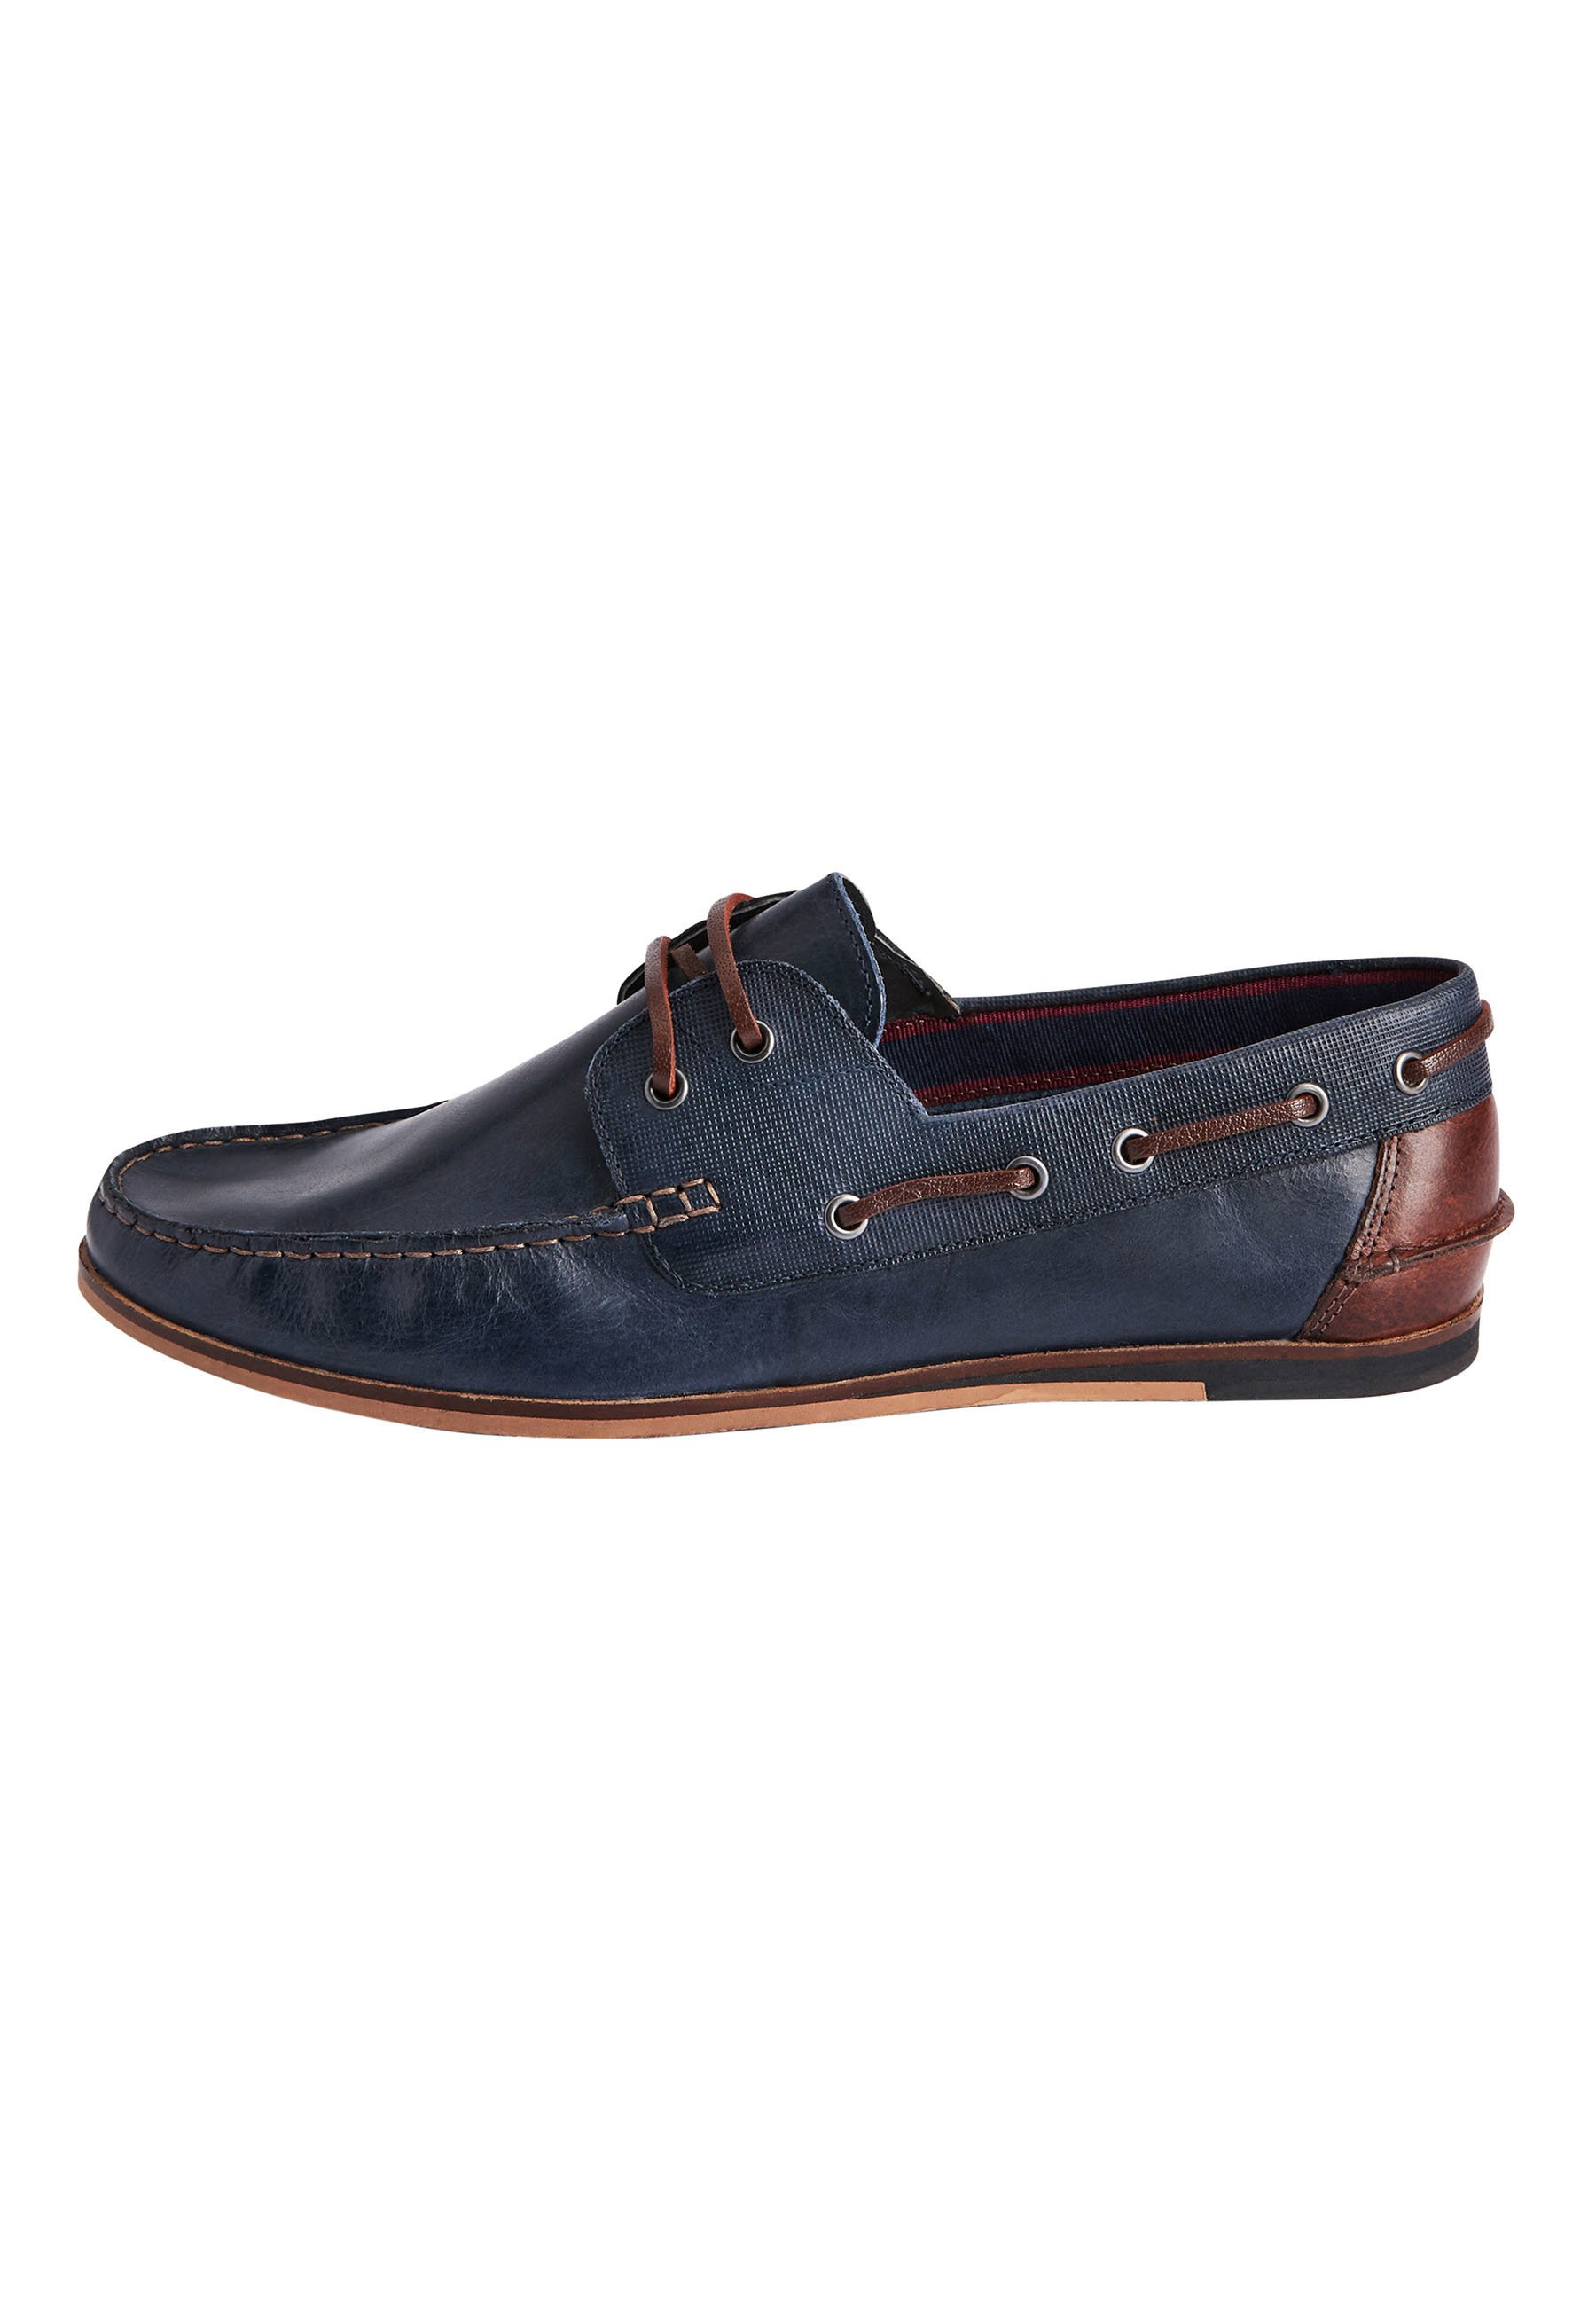 Hombre NAVY FORMAL TEXTURED LEATHER BOAT SHOES - Náuticos